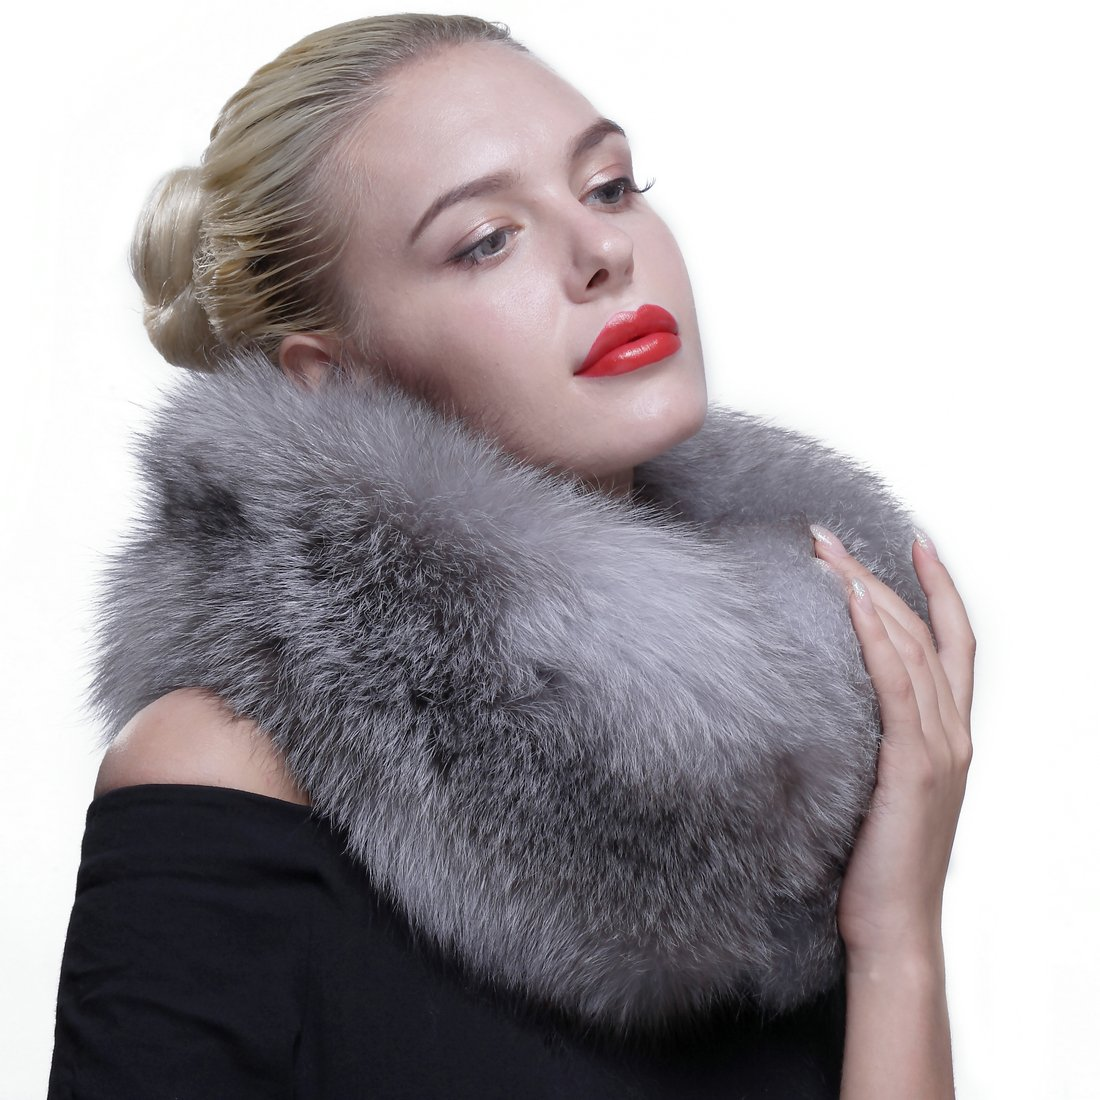 URSFUR Women's Knitted Authentic Silver Fox Fur Cowl Scarf by URSFUR (Image #2)